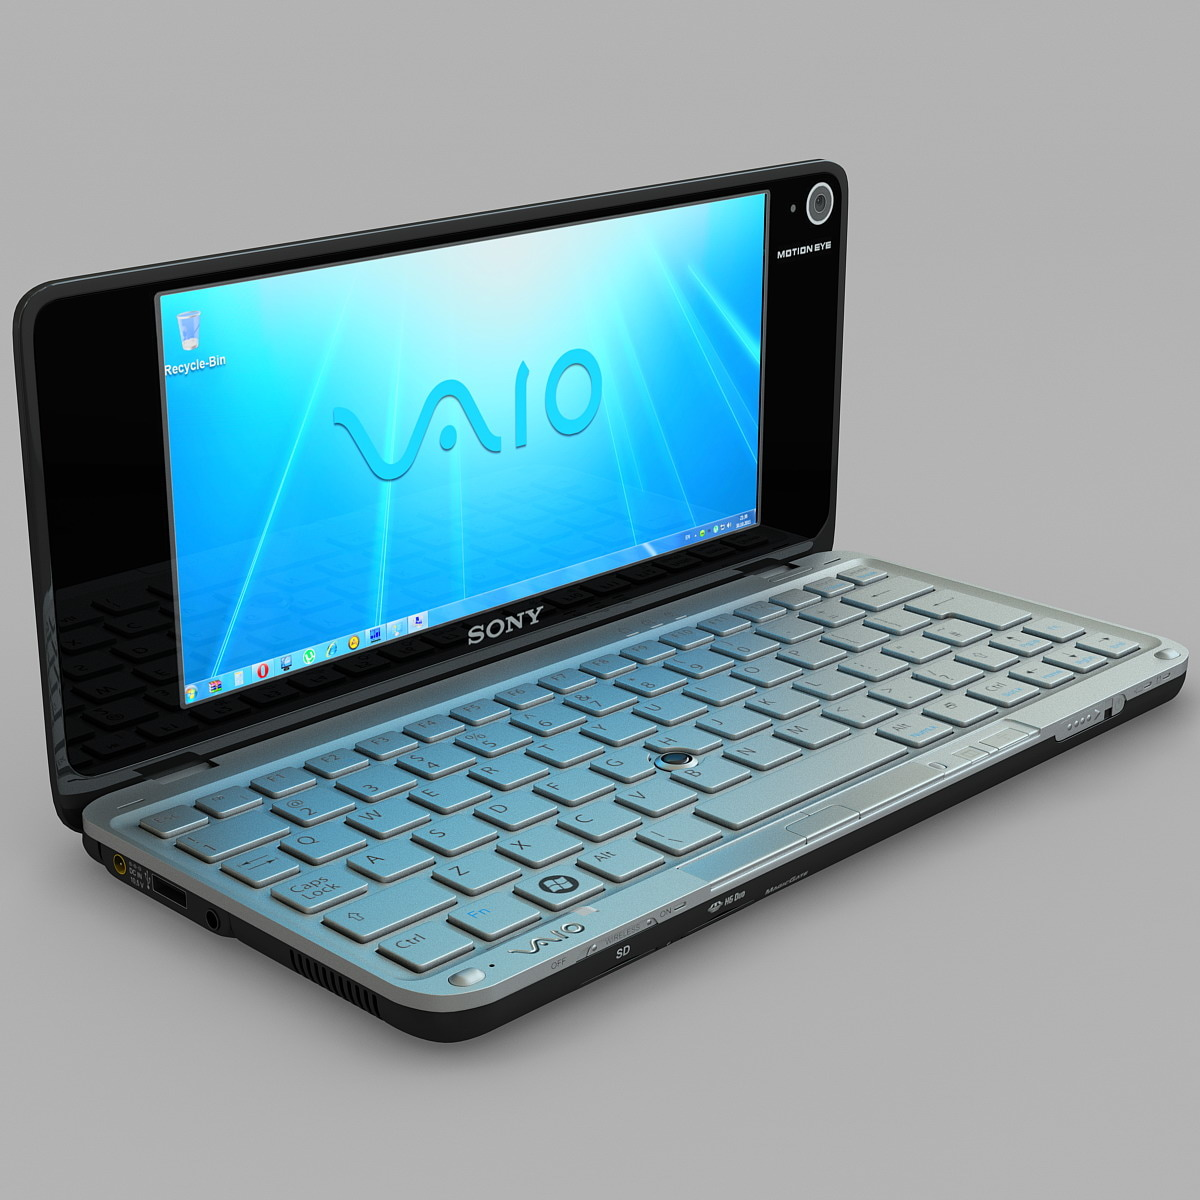 Laptop_Sony_VAIO_P_Black_005.jpg